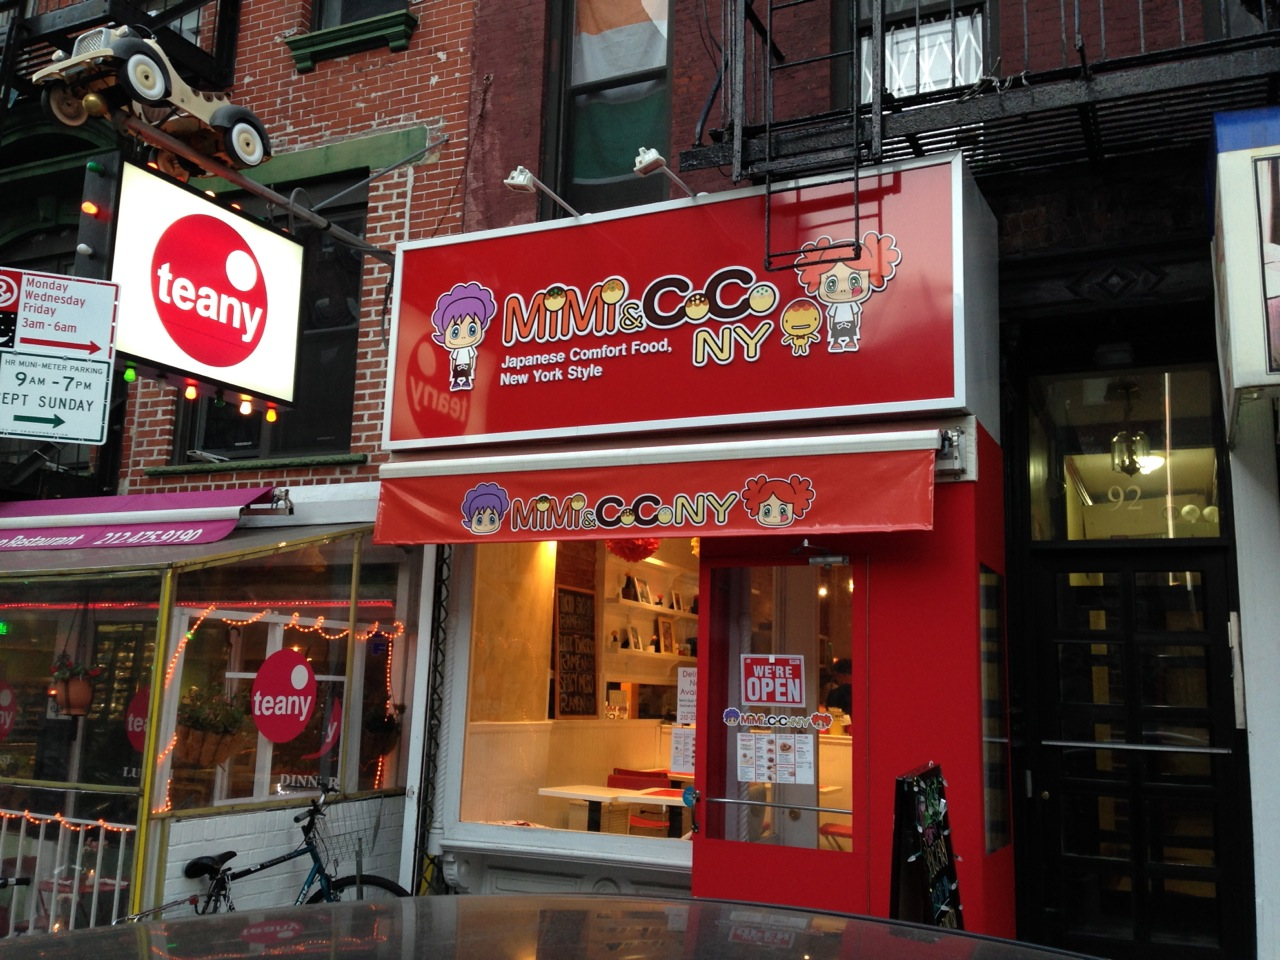 Savor mimi and coco 39 s street food at their restaurant for Accord asian cuisine nyc